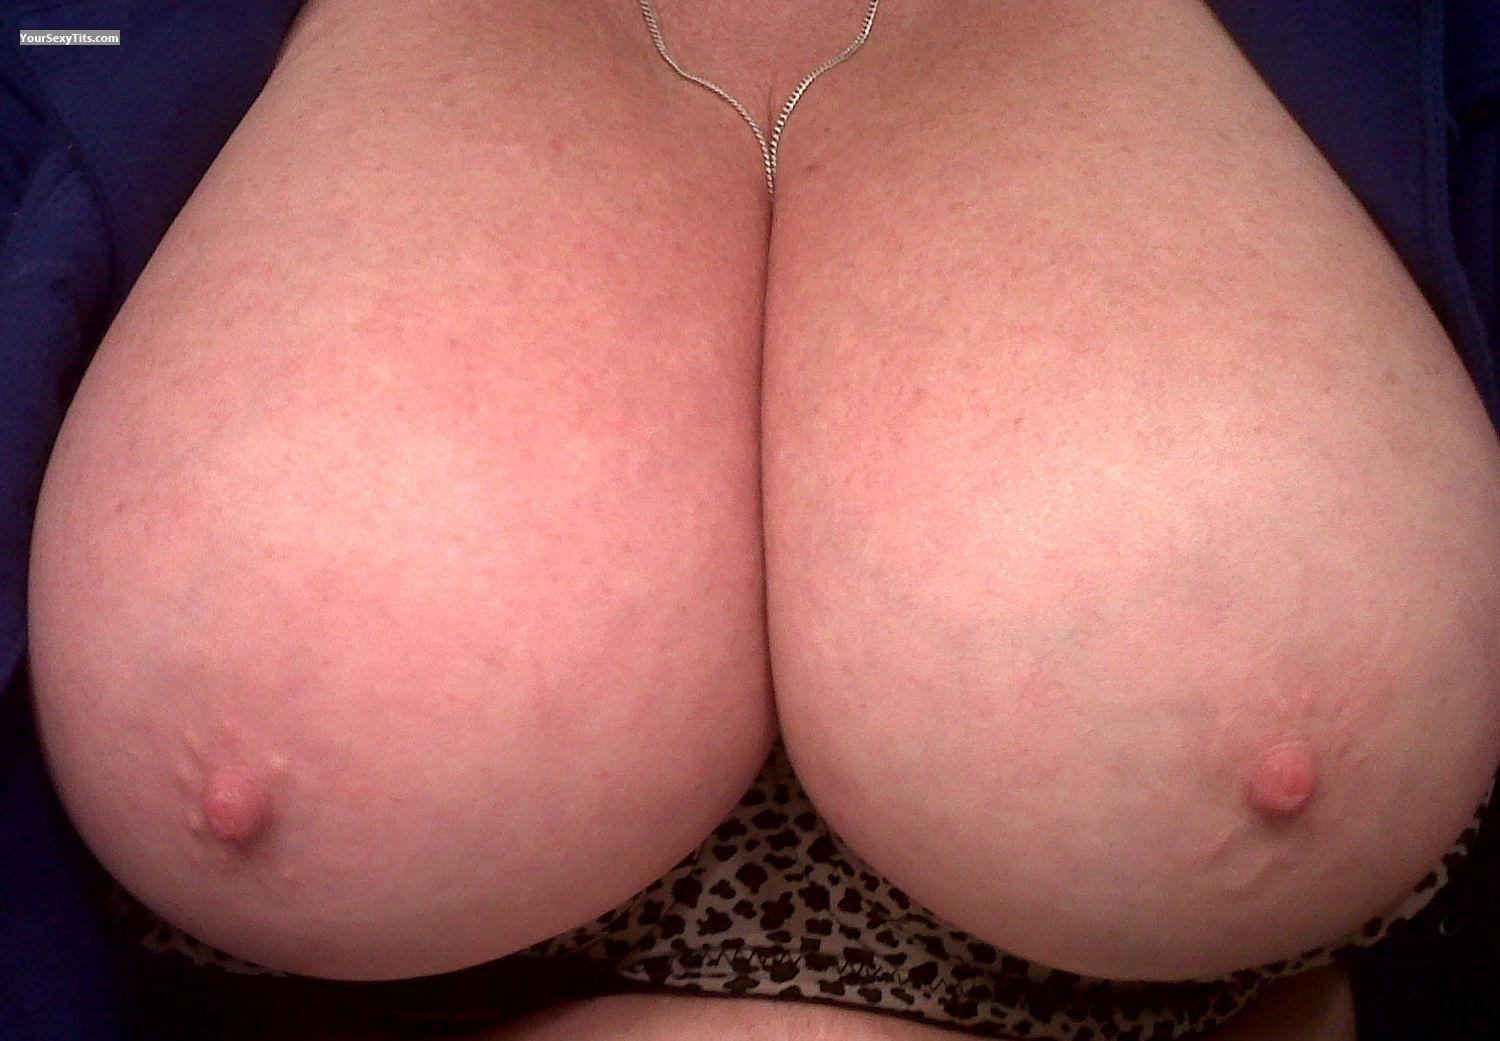 My Very big Tits Selfie by Nirvana